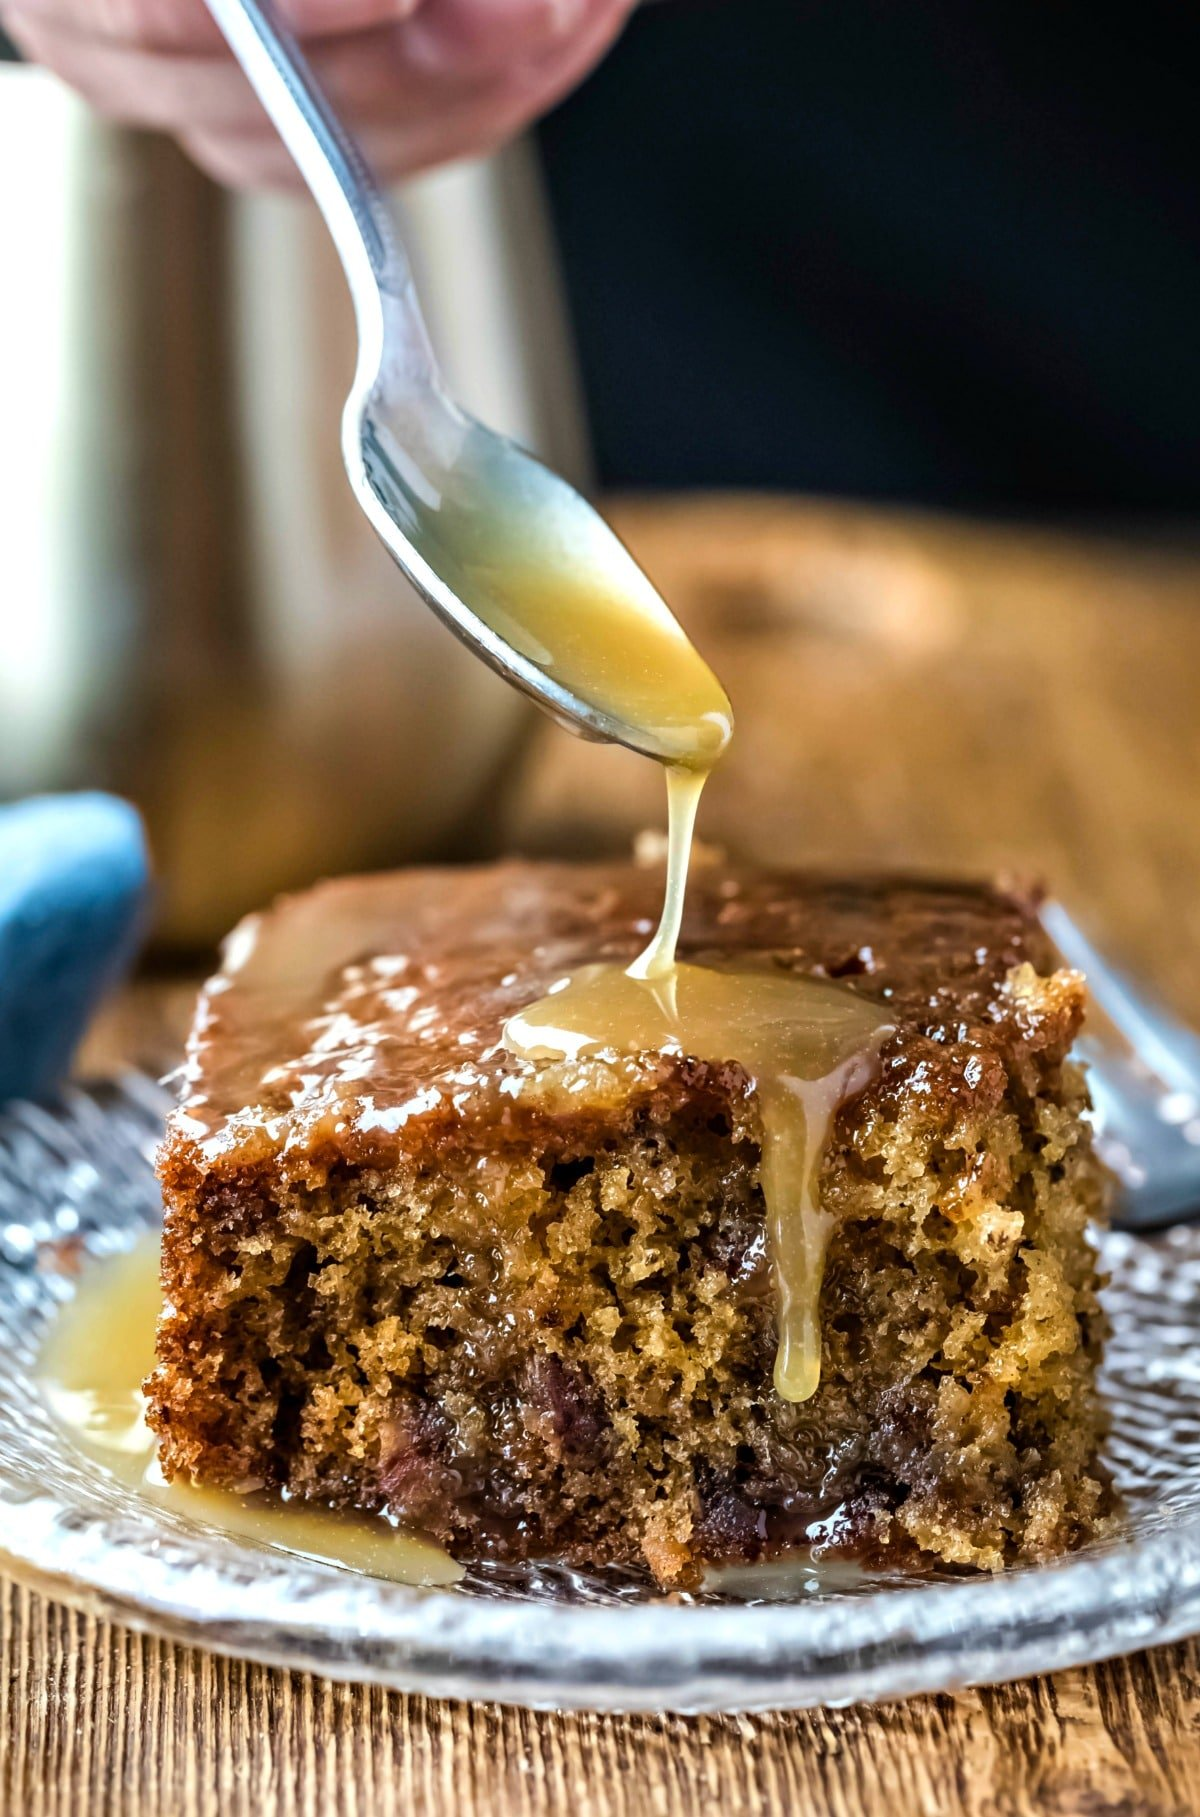 Spoon drizzling sauce onto a piece of sticky toffee pudding cake